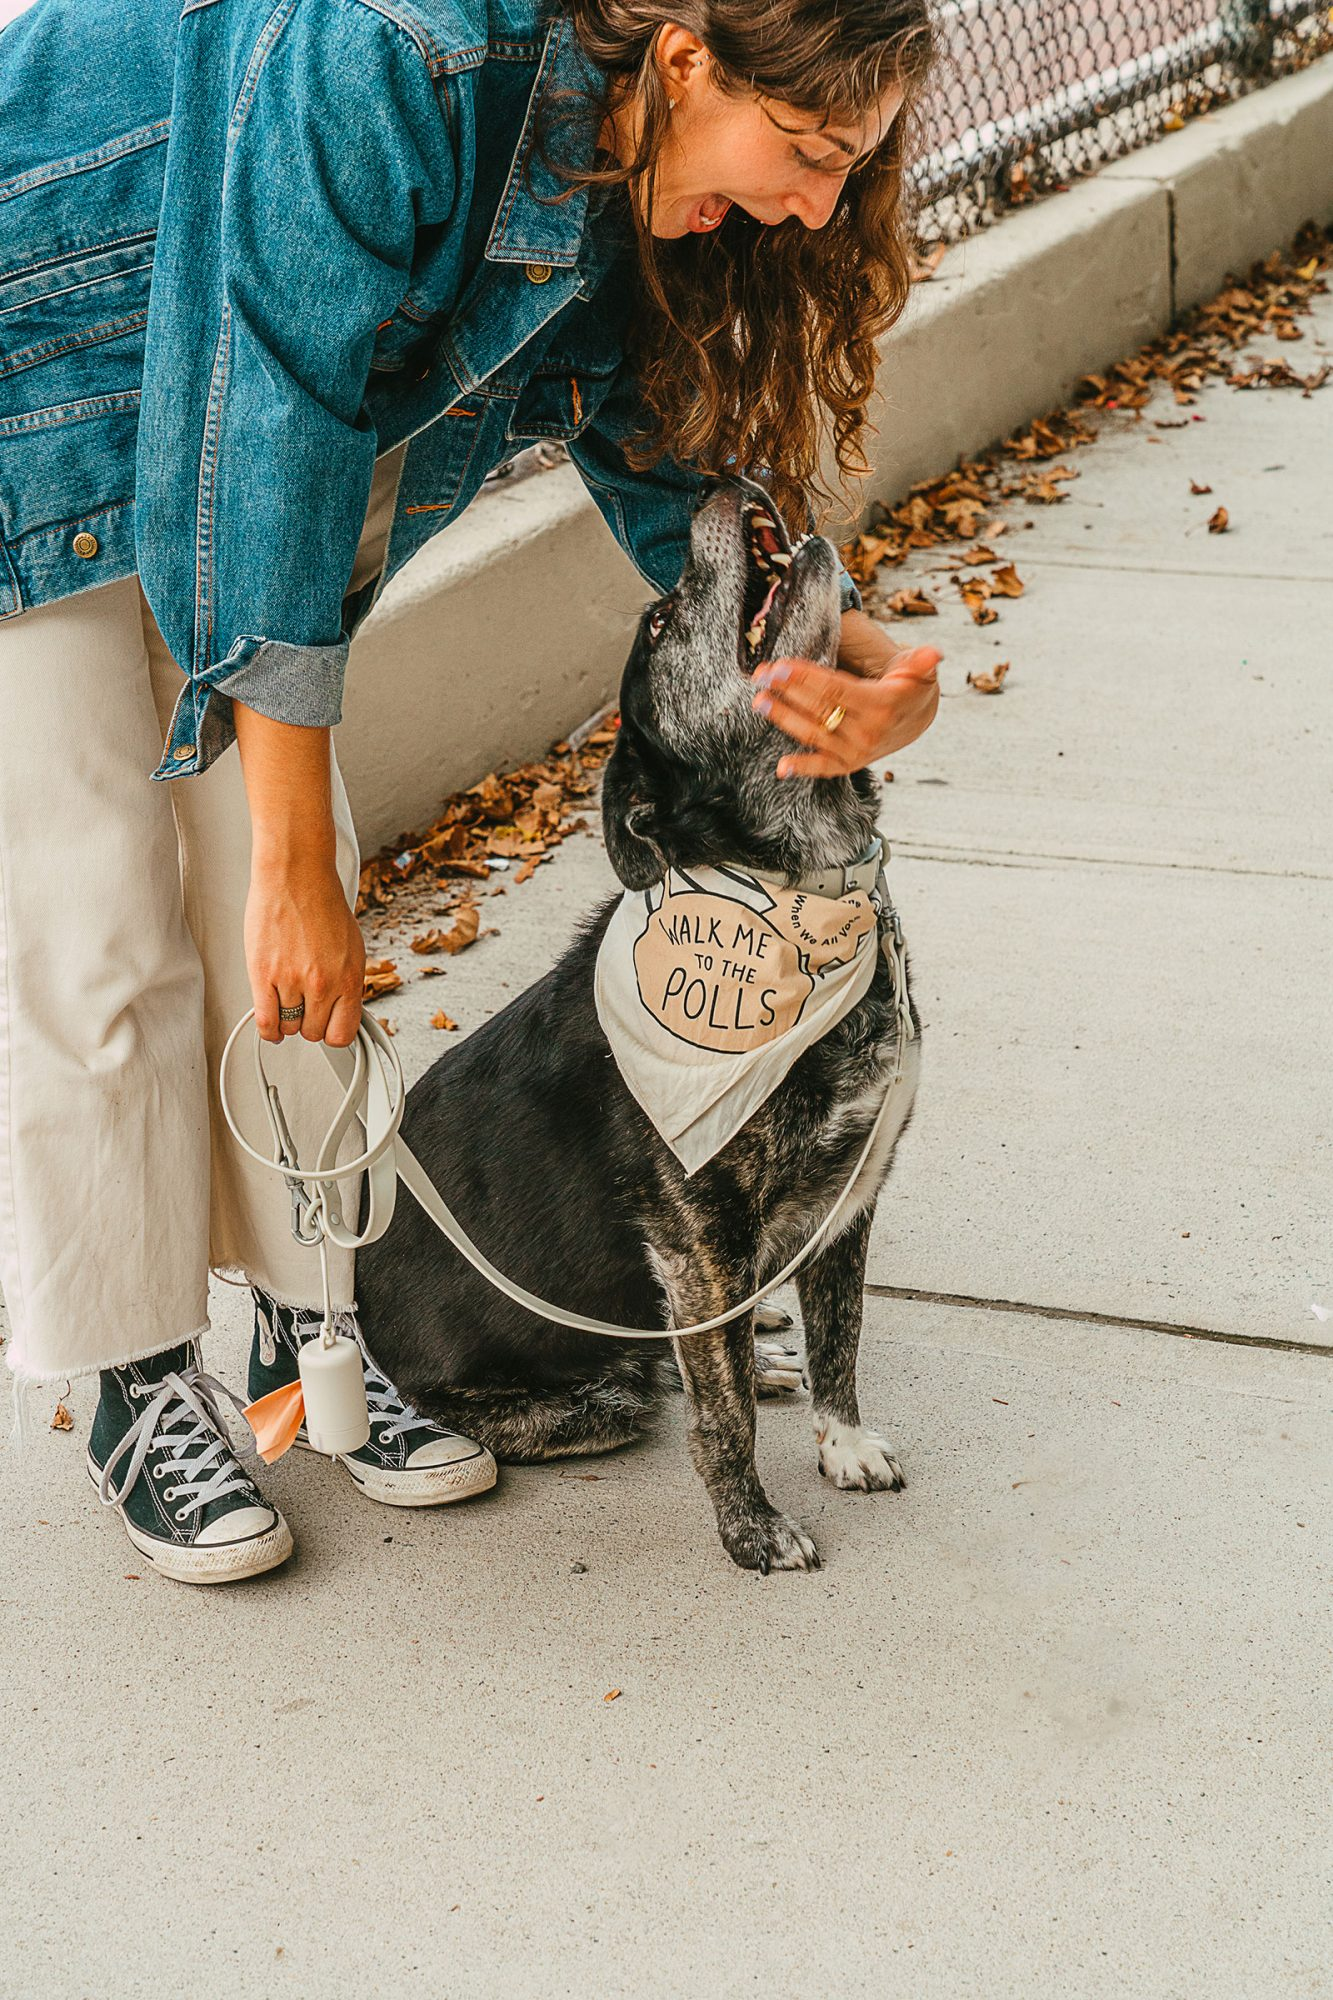 Wild one partners with vote campaign and makes dog gear